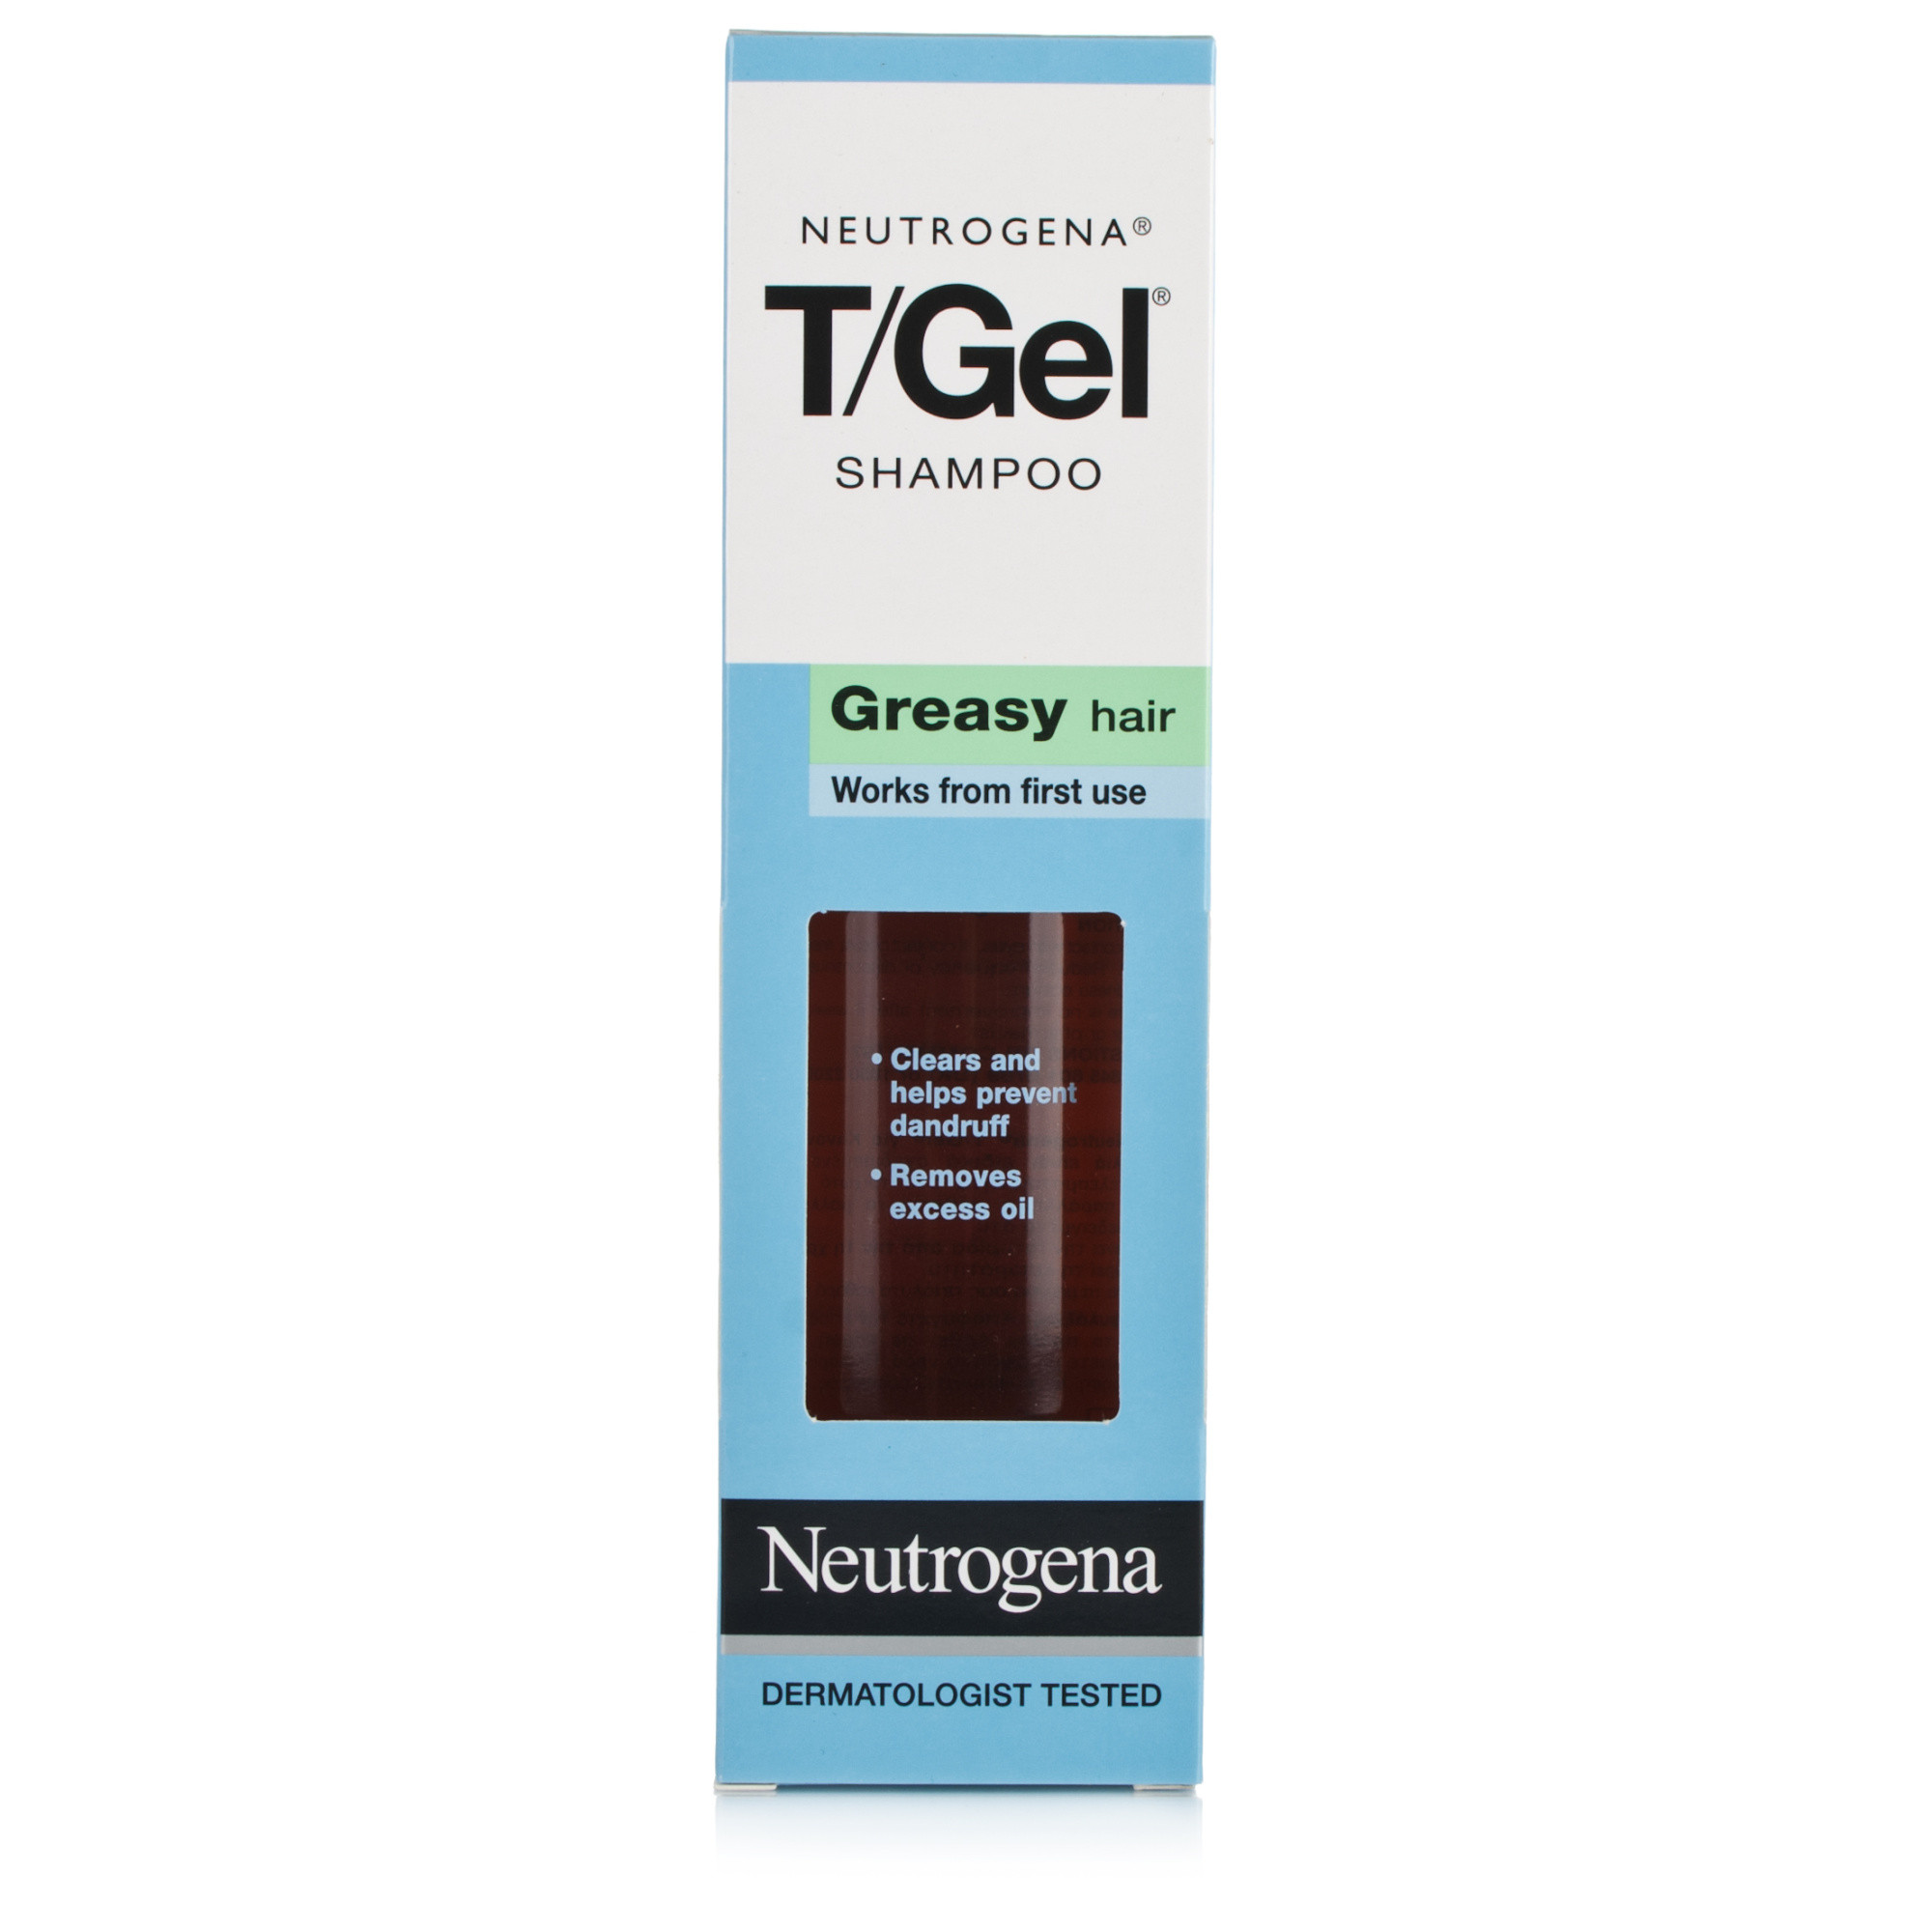 Neutrogena T/Gel Dandruff Shampoo For Greasy Hair